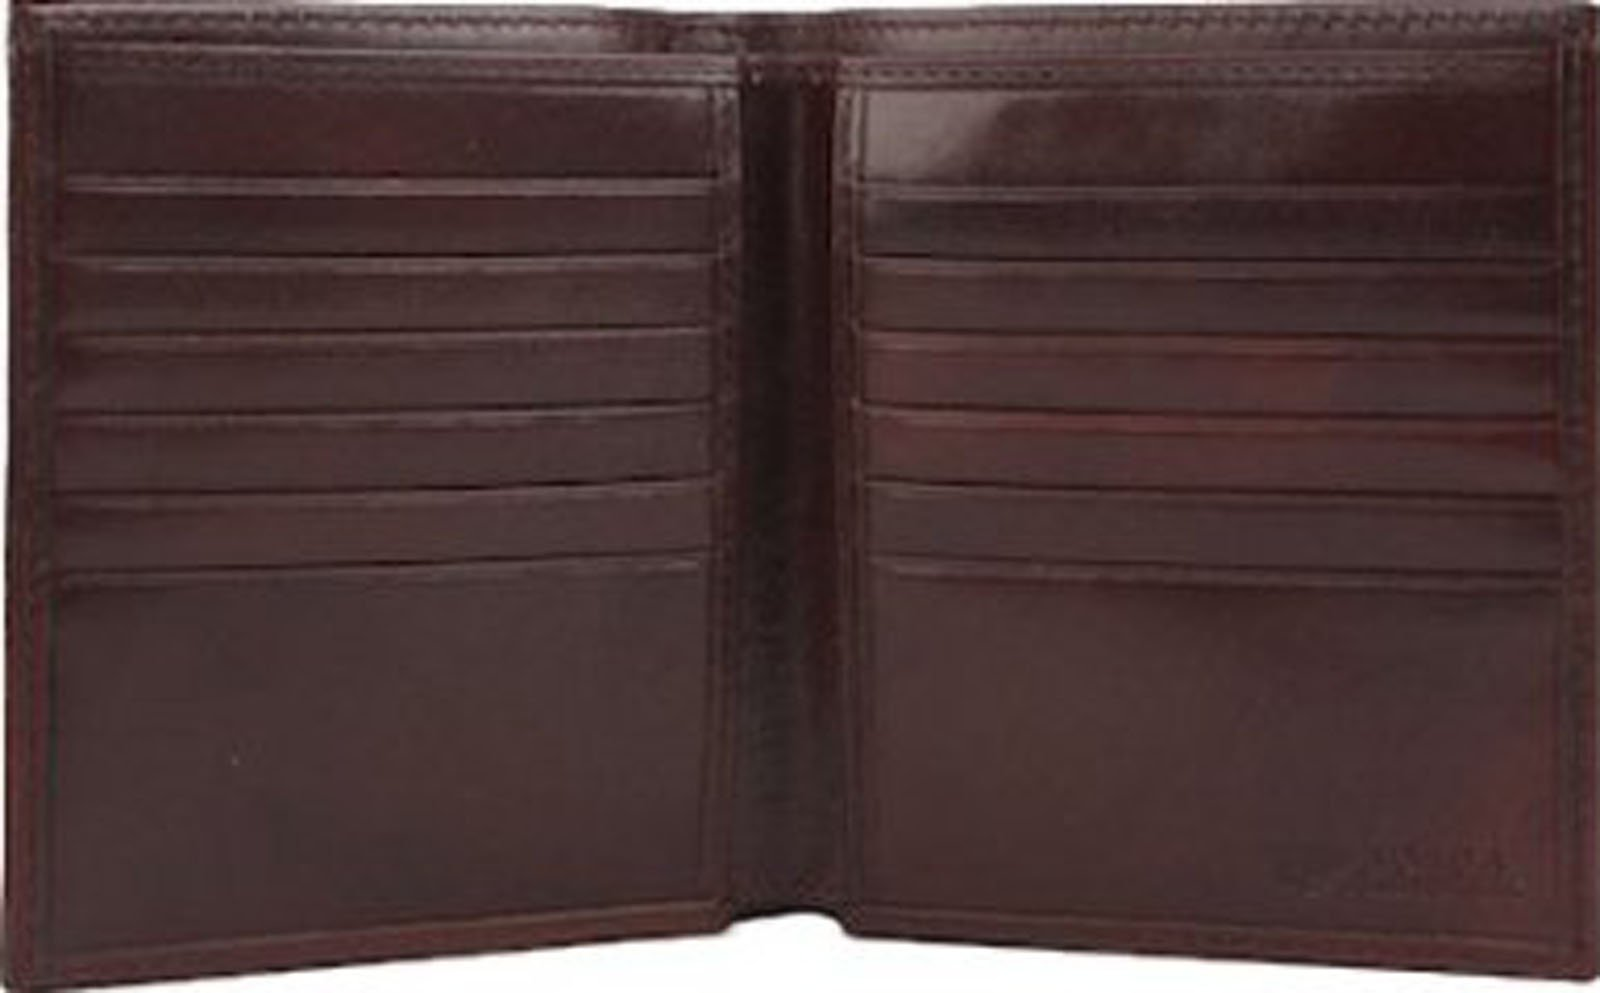 Bosca Old Leather Collection Dark Brown 12 Pocket Bifold Wallet by Bosca (Image #1)